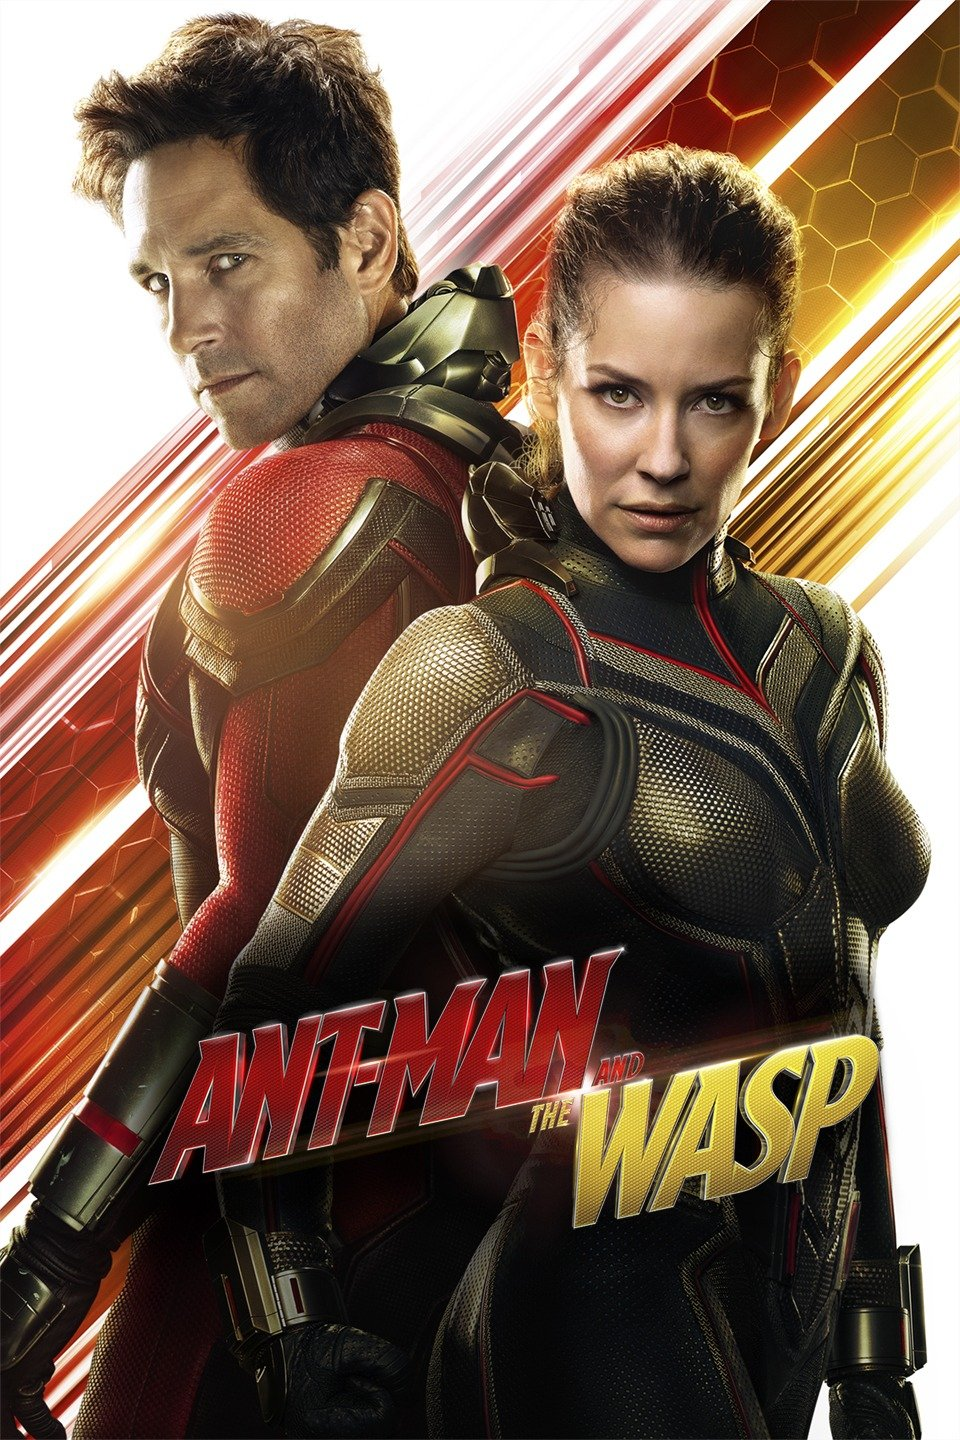 Ant-Man and The Wasp poster art